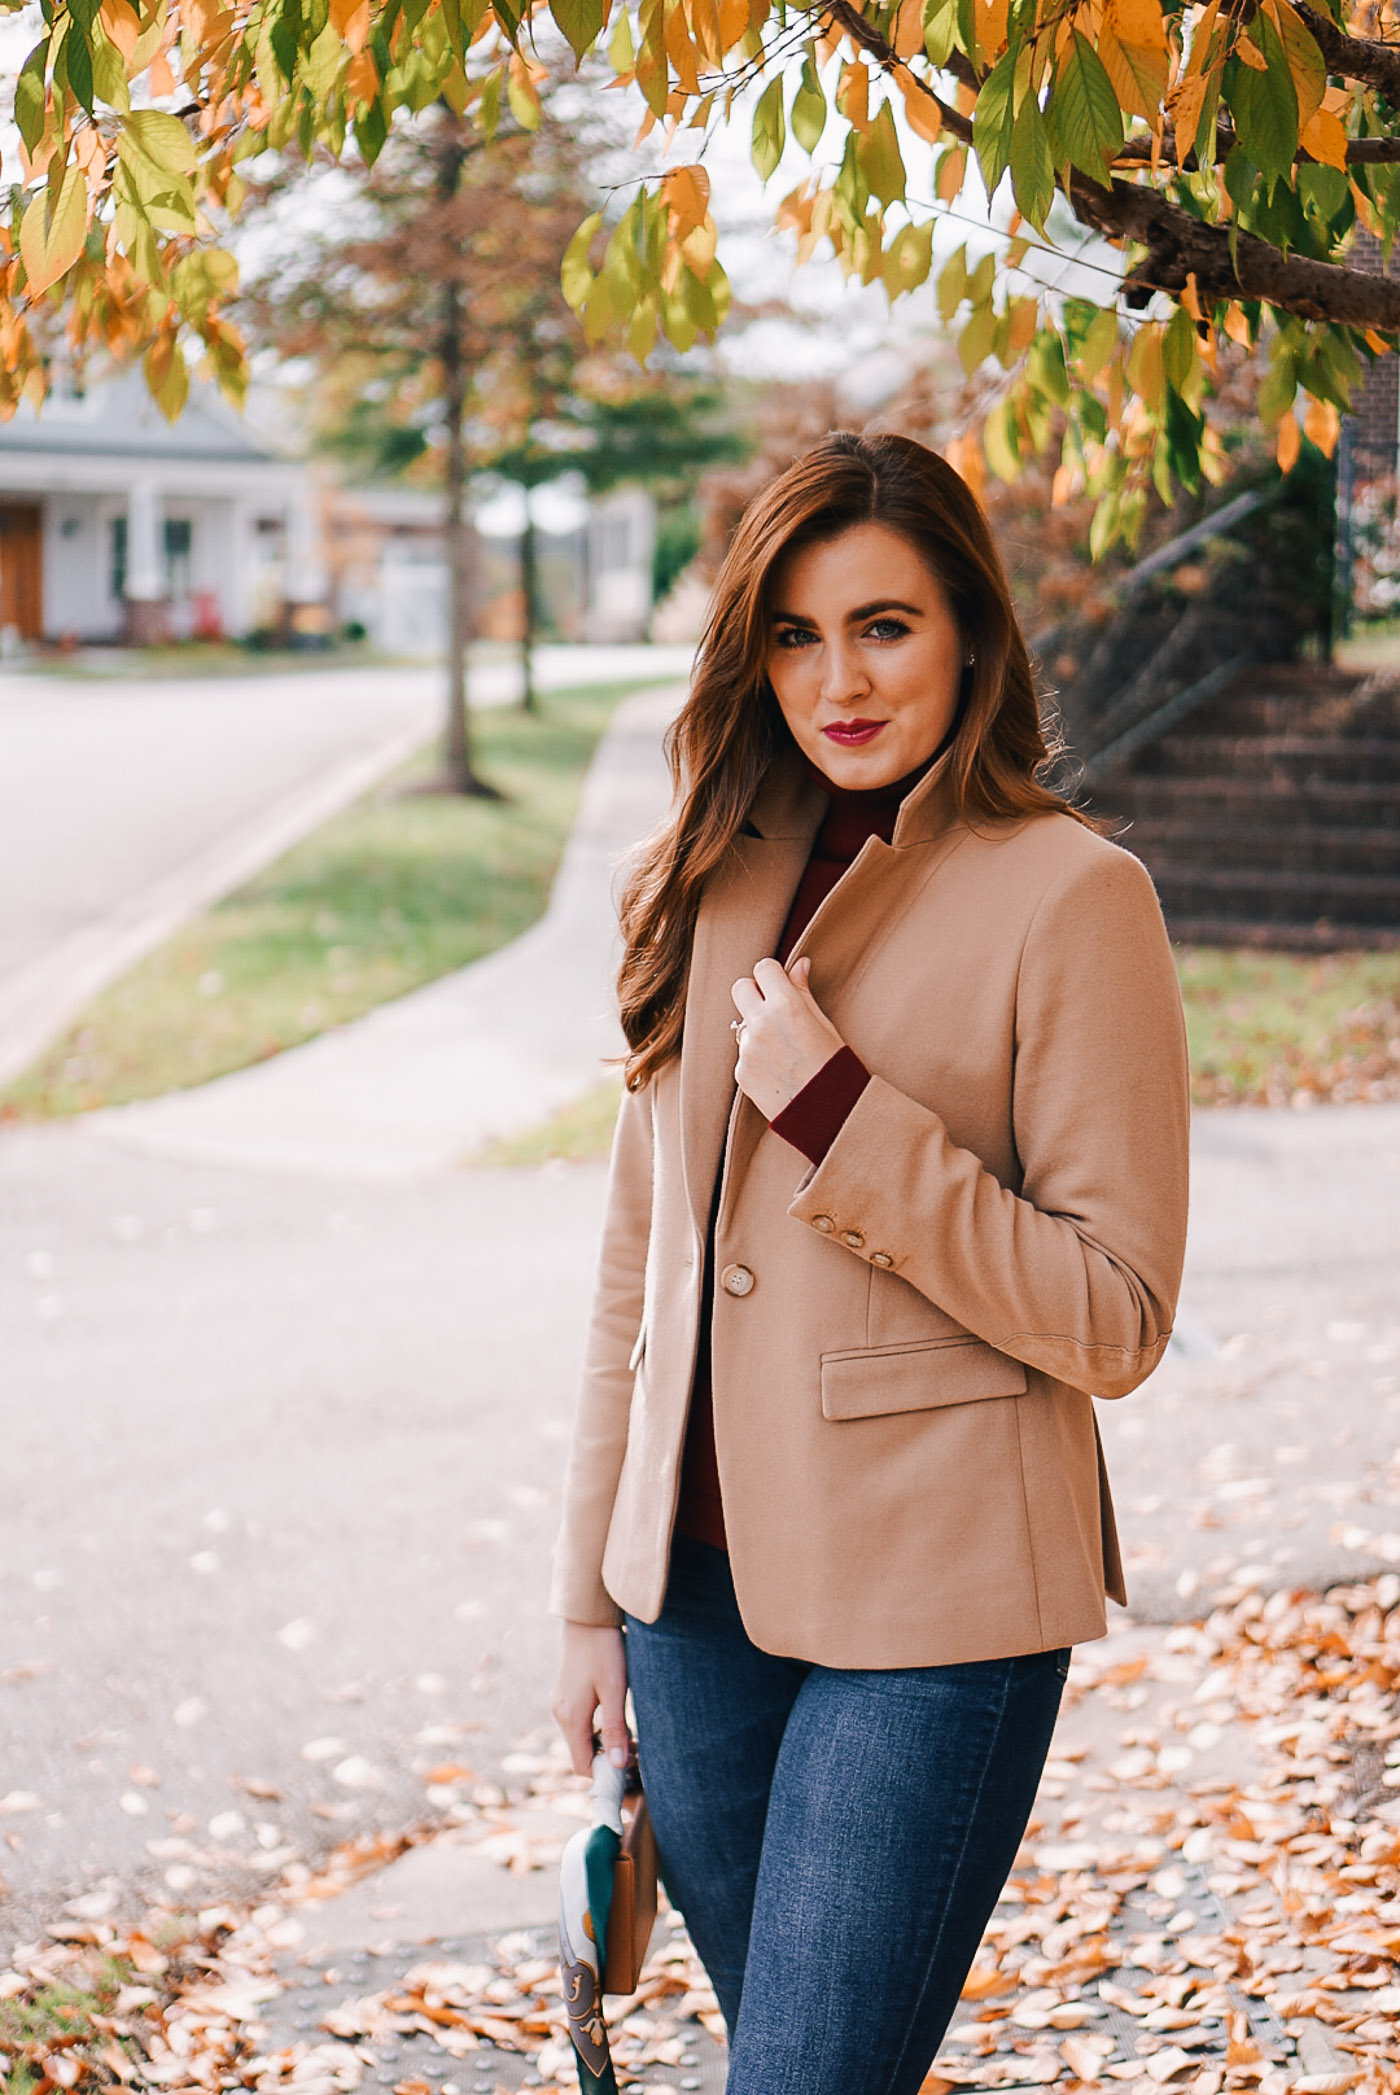 A roundup of seven of Fall's best women's blazers under $150 by Lauren Cermak of the Southern Lifestyle Blog, Going For Grace.